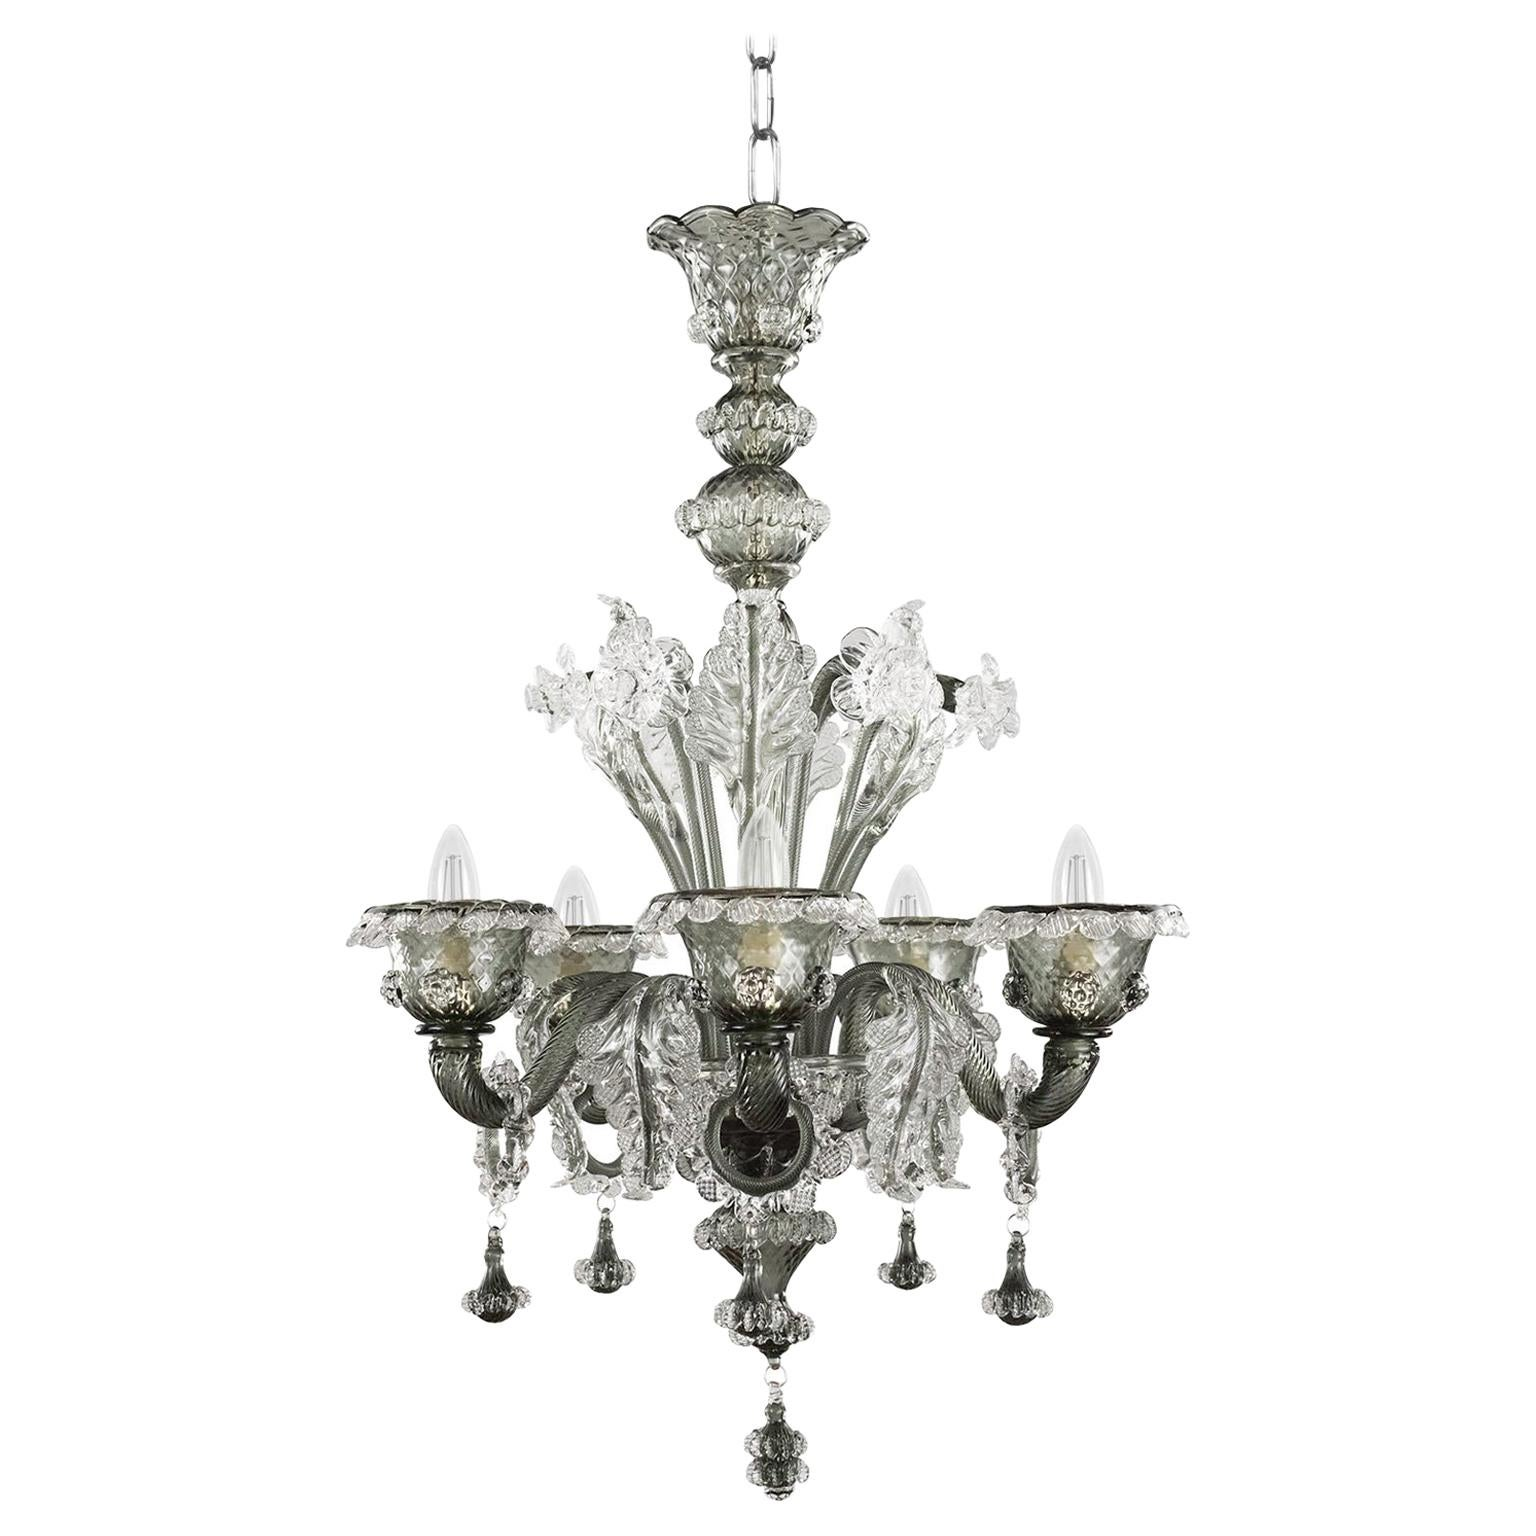 Artistic Rich Chandelier, 6 Arms Clear and Dark Grey Murano Glass by Multiforme